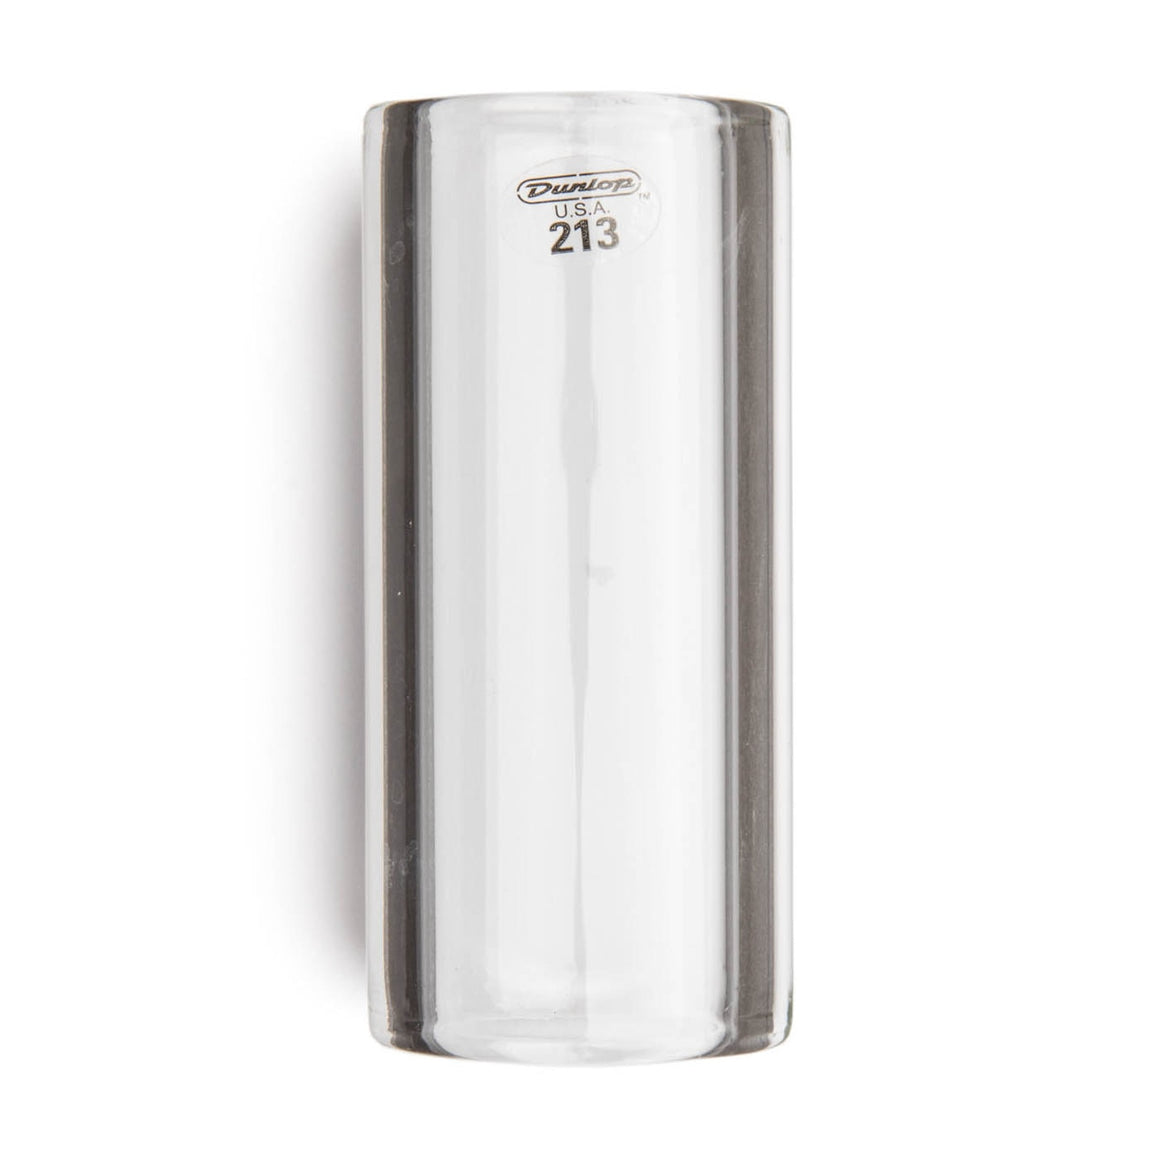 Jim Dunlop 213 Glass Slide